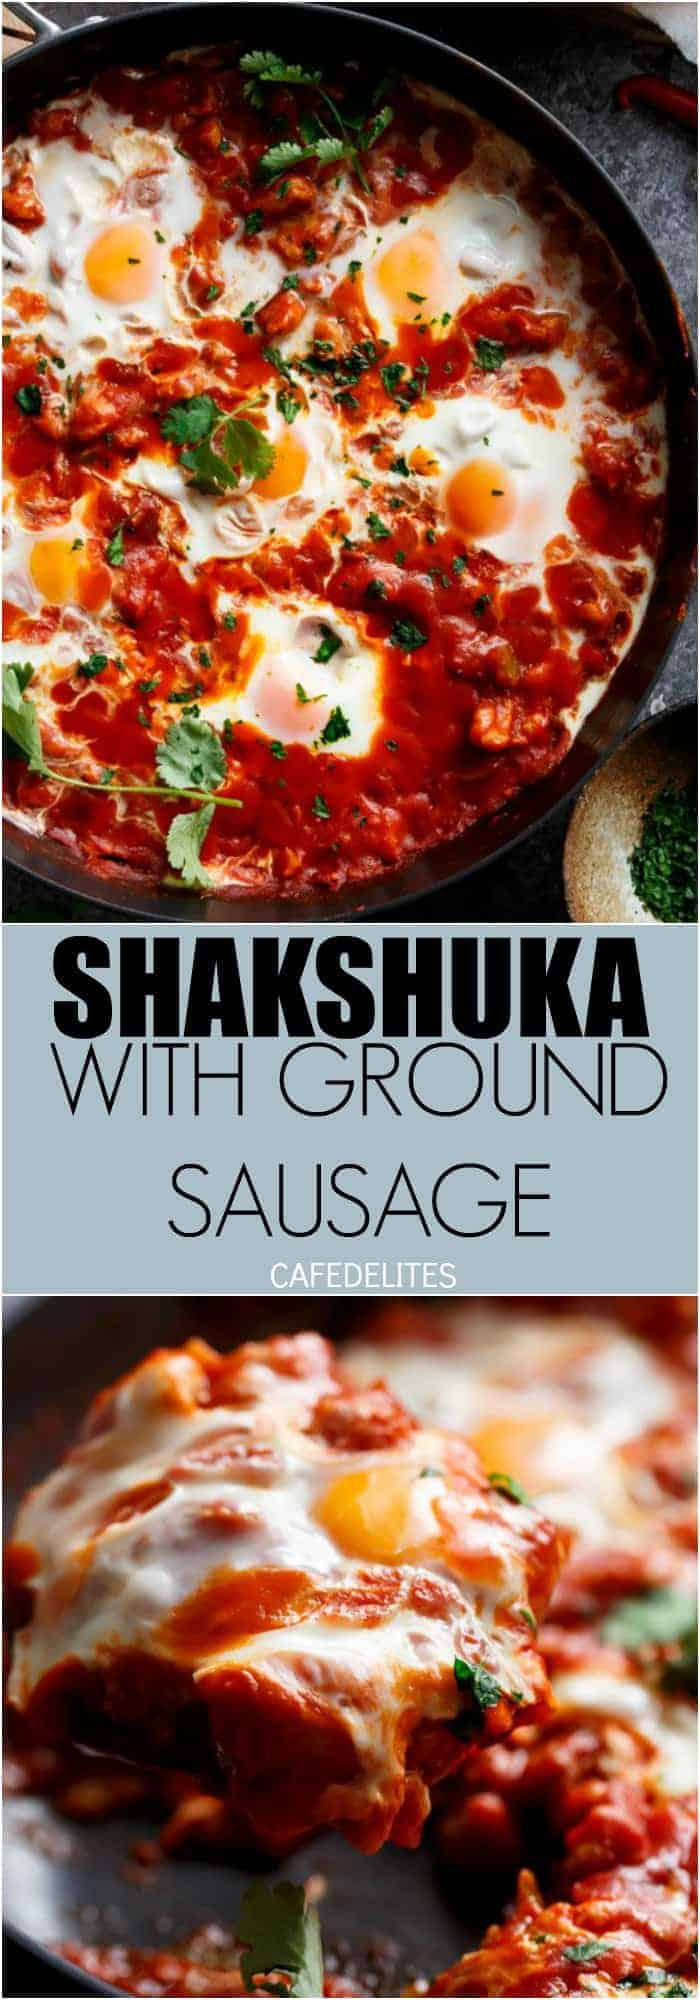 Eggs In Tomato Sauce (Shakshuka): thick, runny yolk meets rich tomato sauce. This is some good, fiery comfort food   https://cafedelites.com